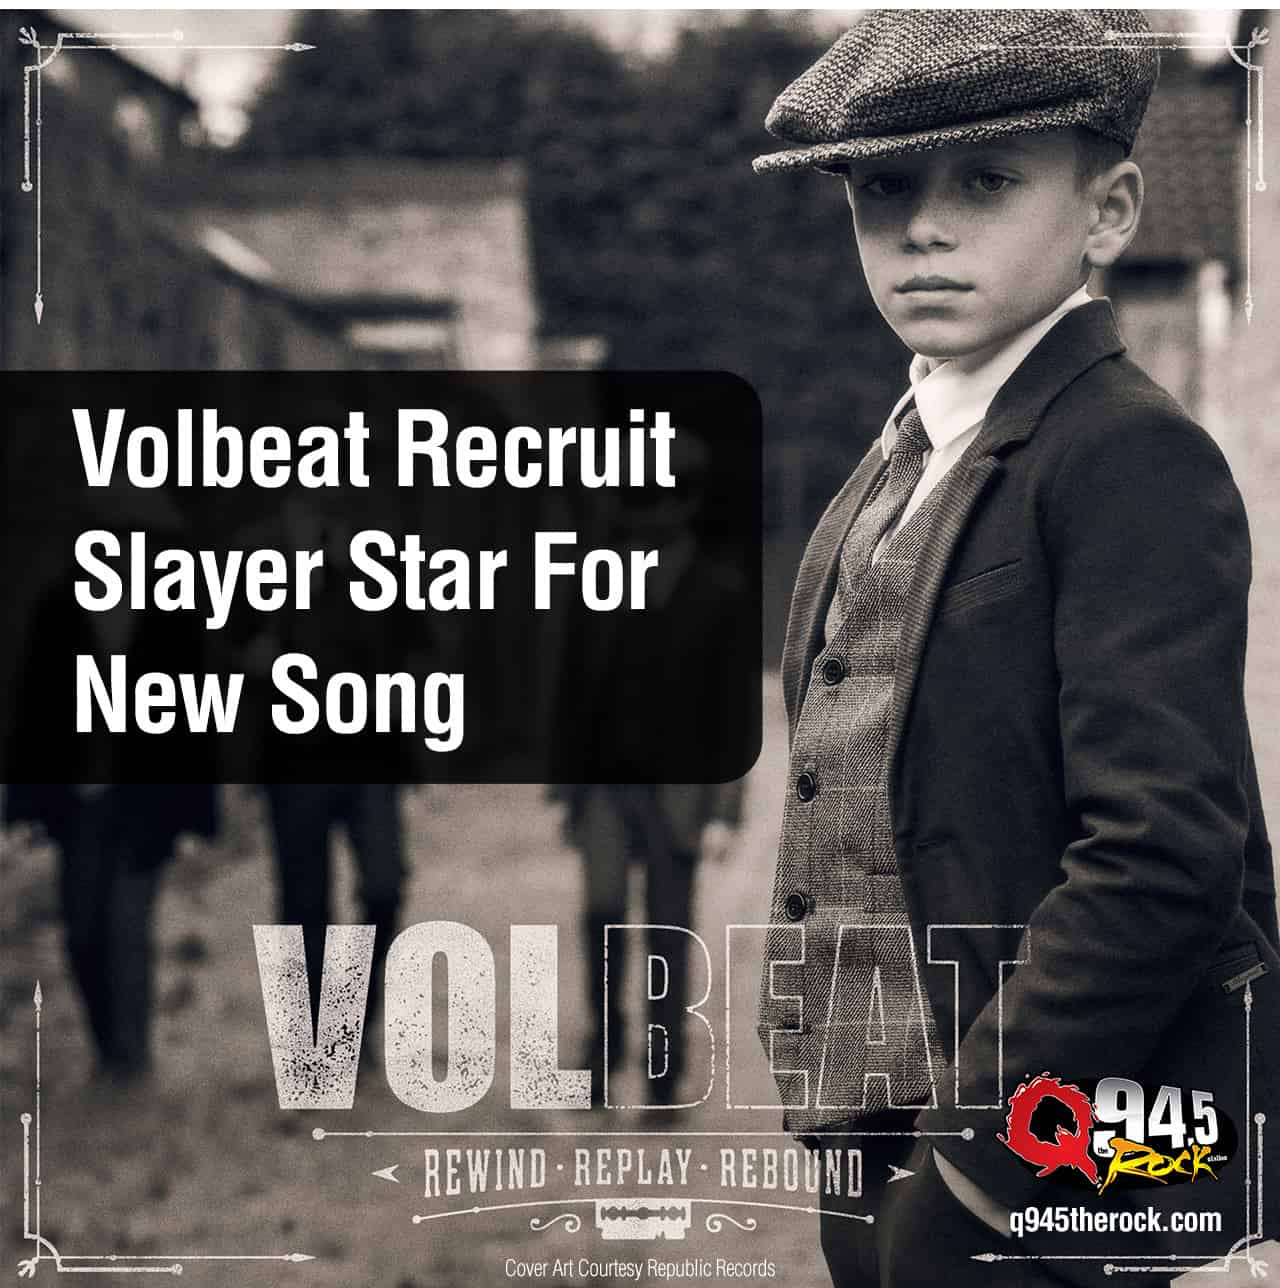 Volbeat Recruit Slayer Star For New Song – Video